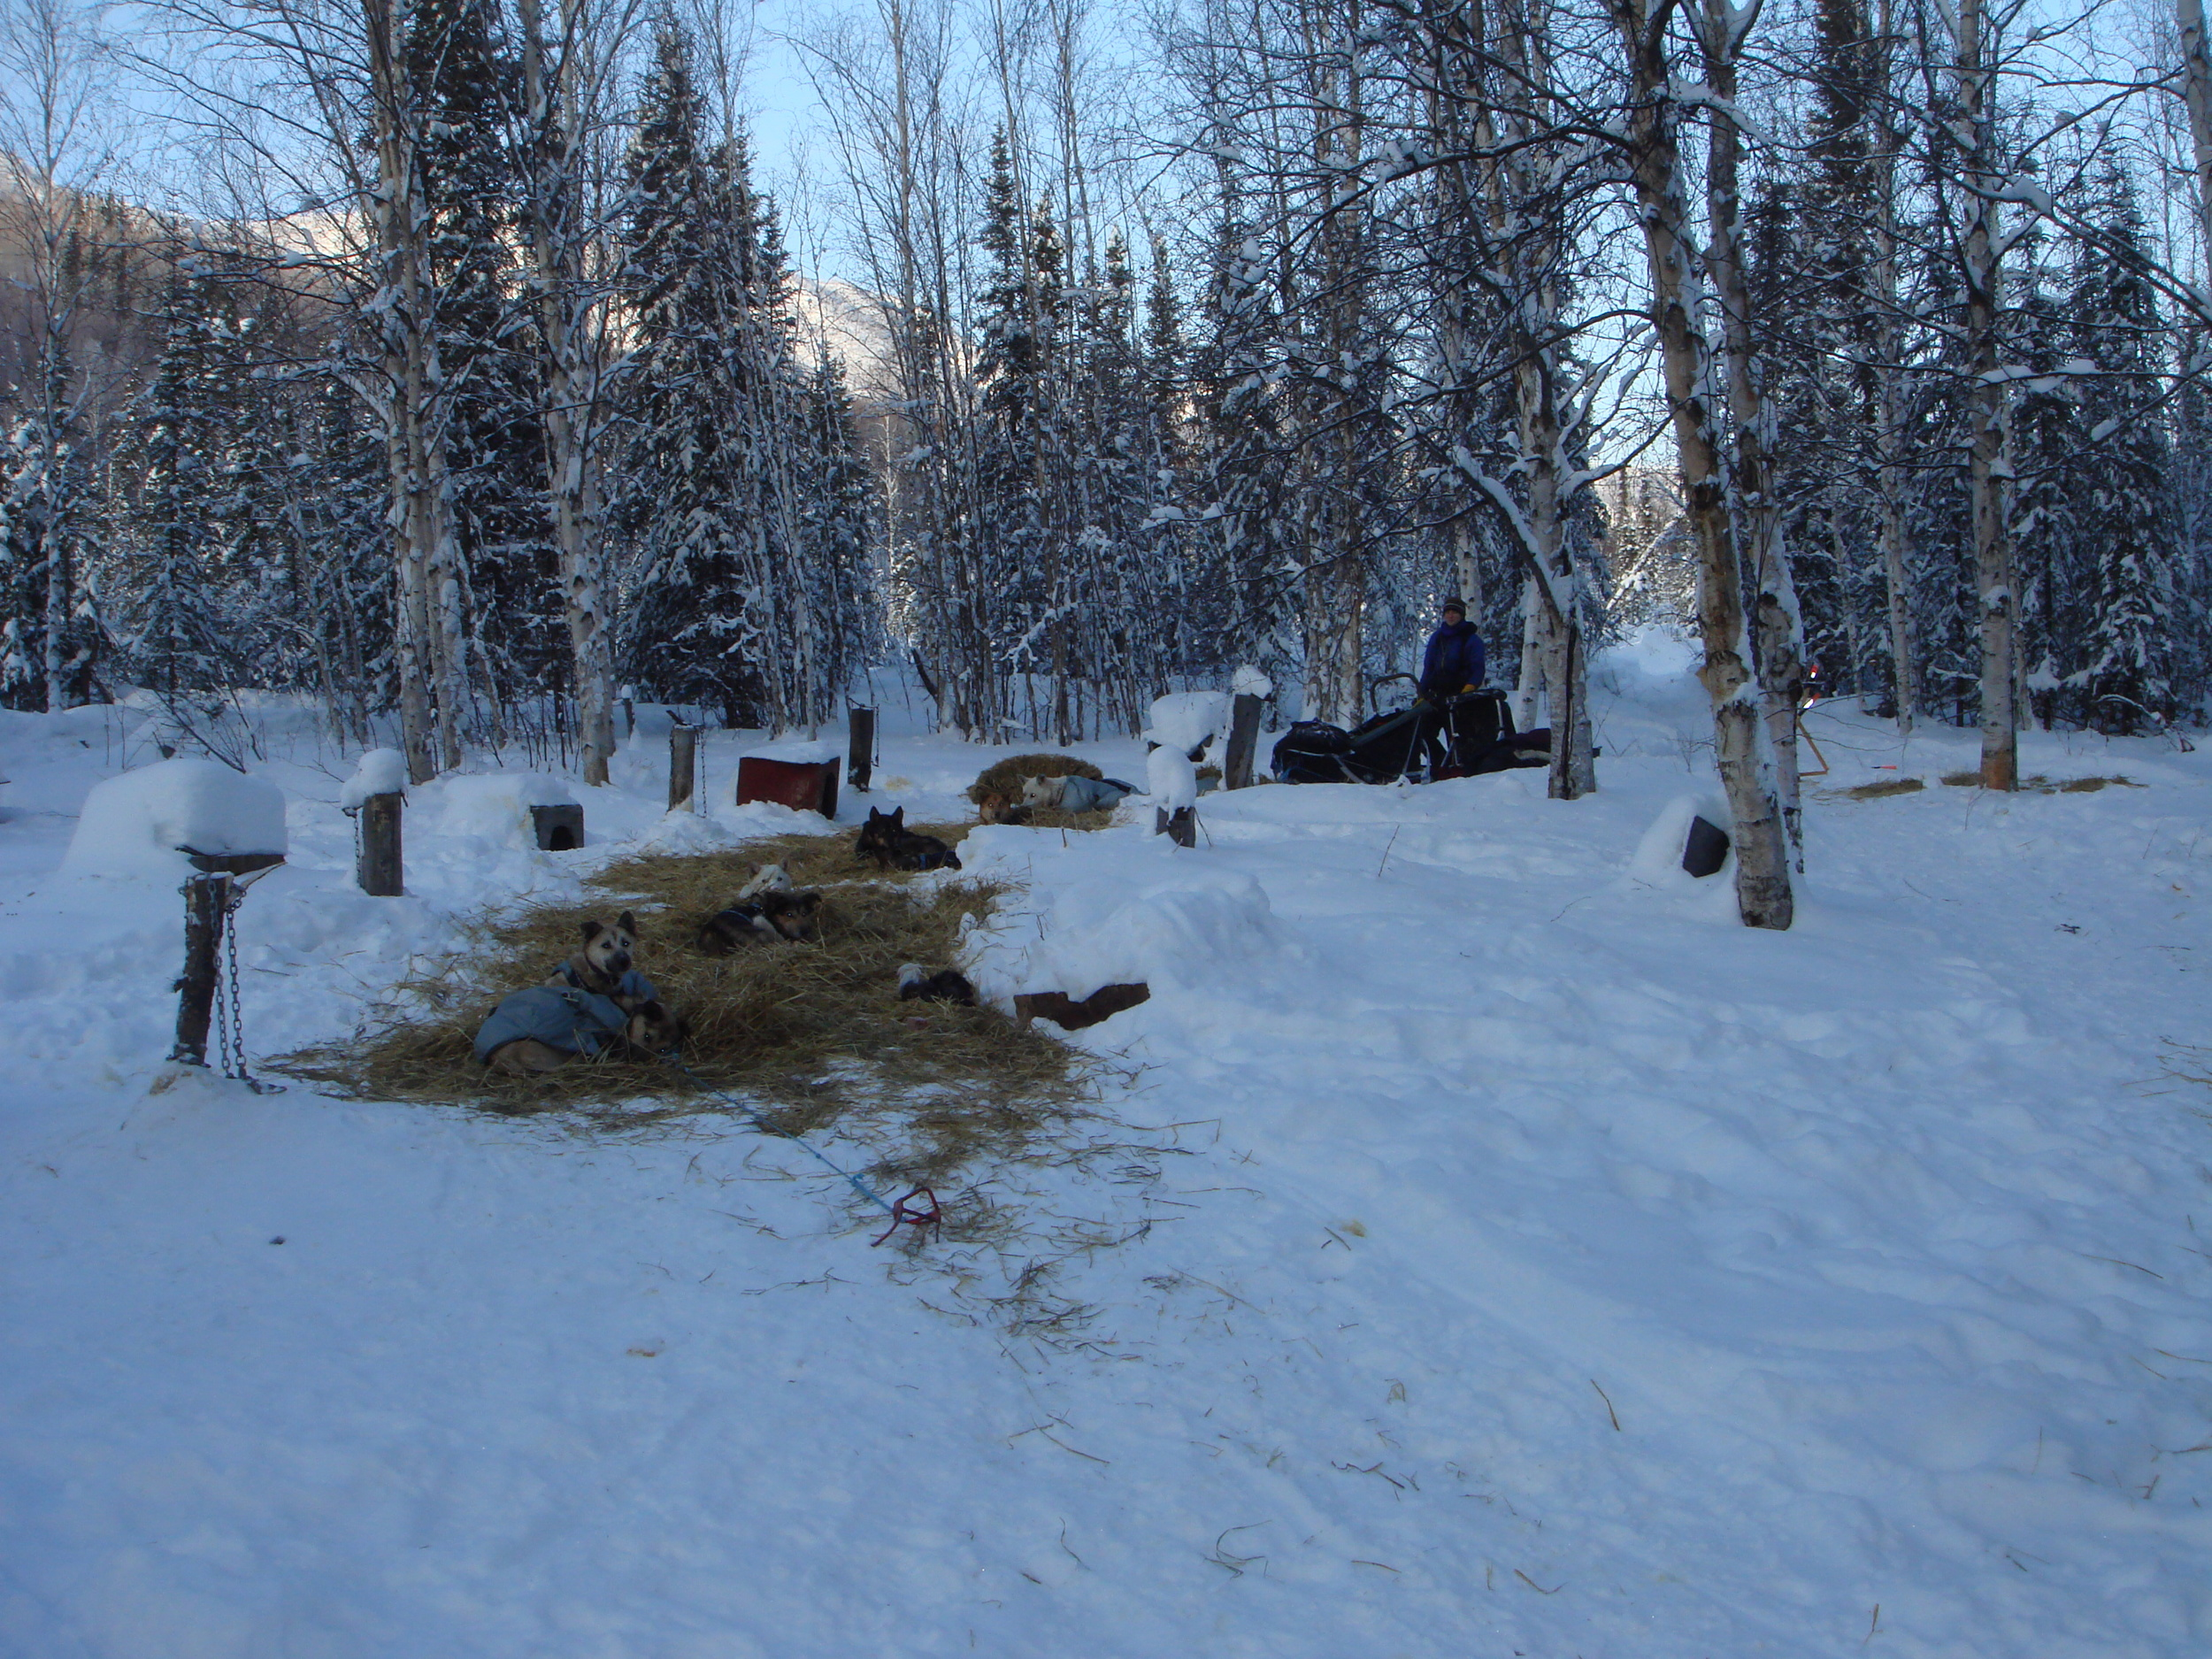 A stop at Trout Creek (Mike Sager's warm cabin opened up for the mushers to enjoy a hot drink!)